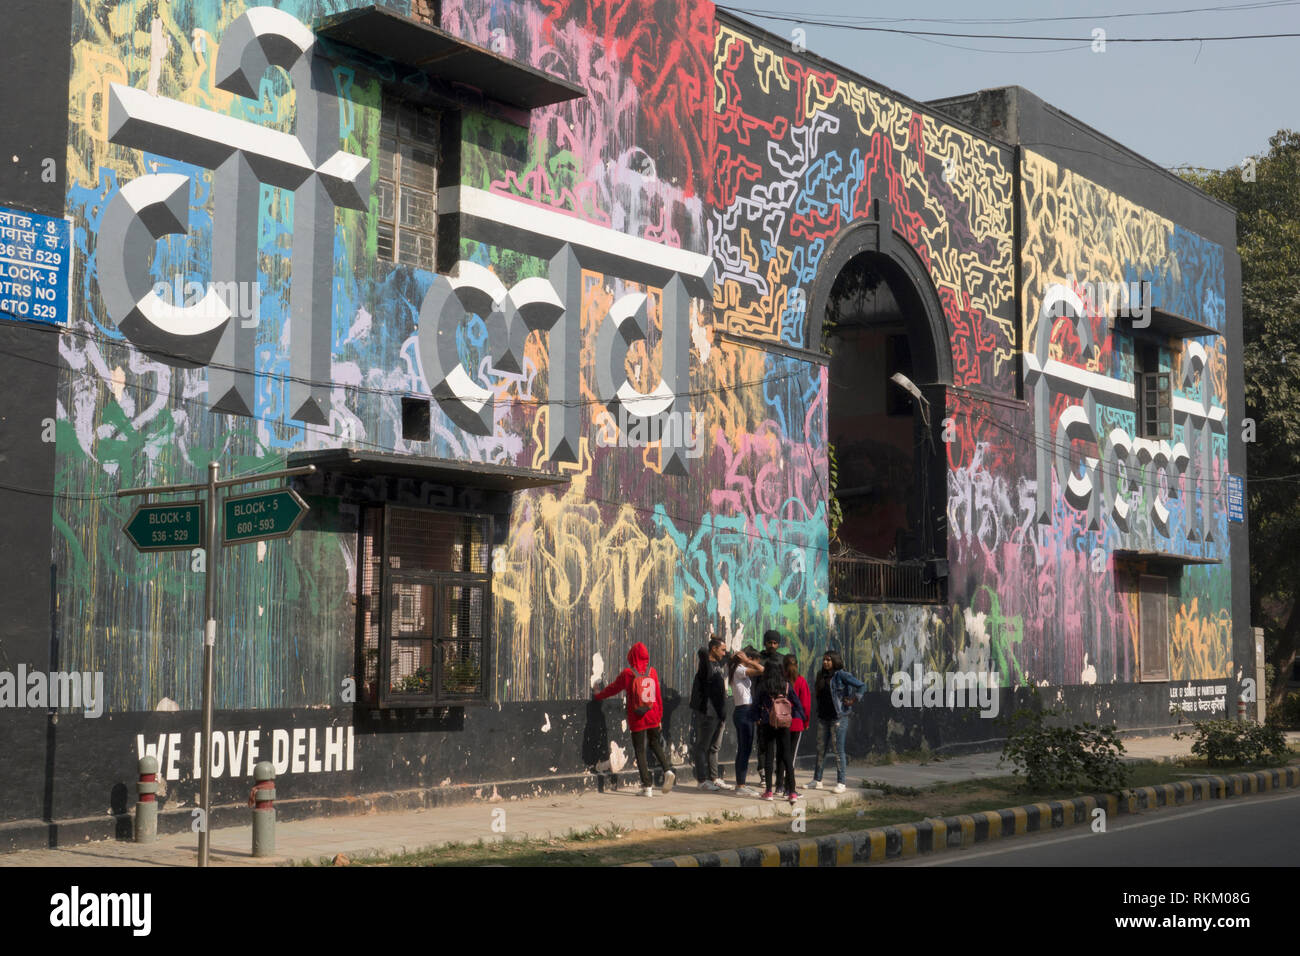 Group of teenagers in front of We Love Delhi street art mural, by artists Lek and Sowat in Lodhi colony, New Delhi, India - Stock Image